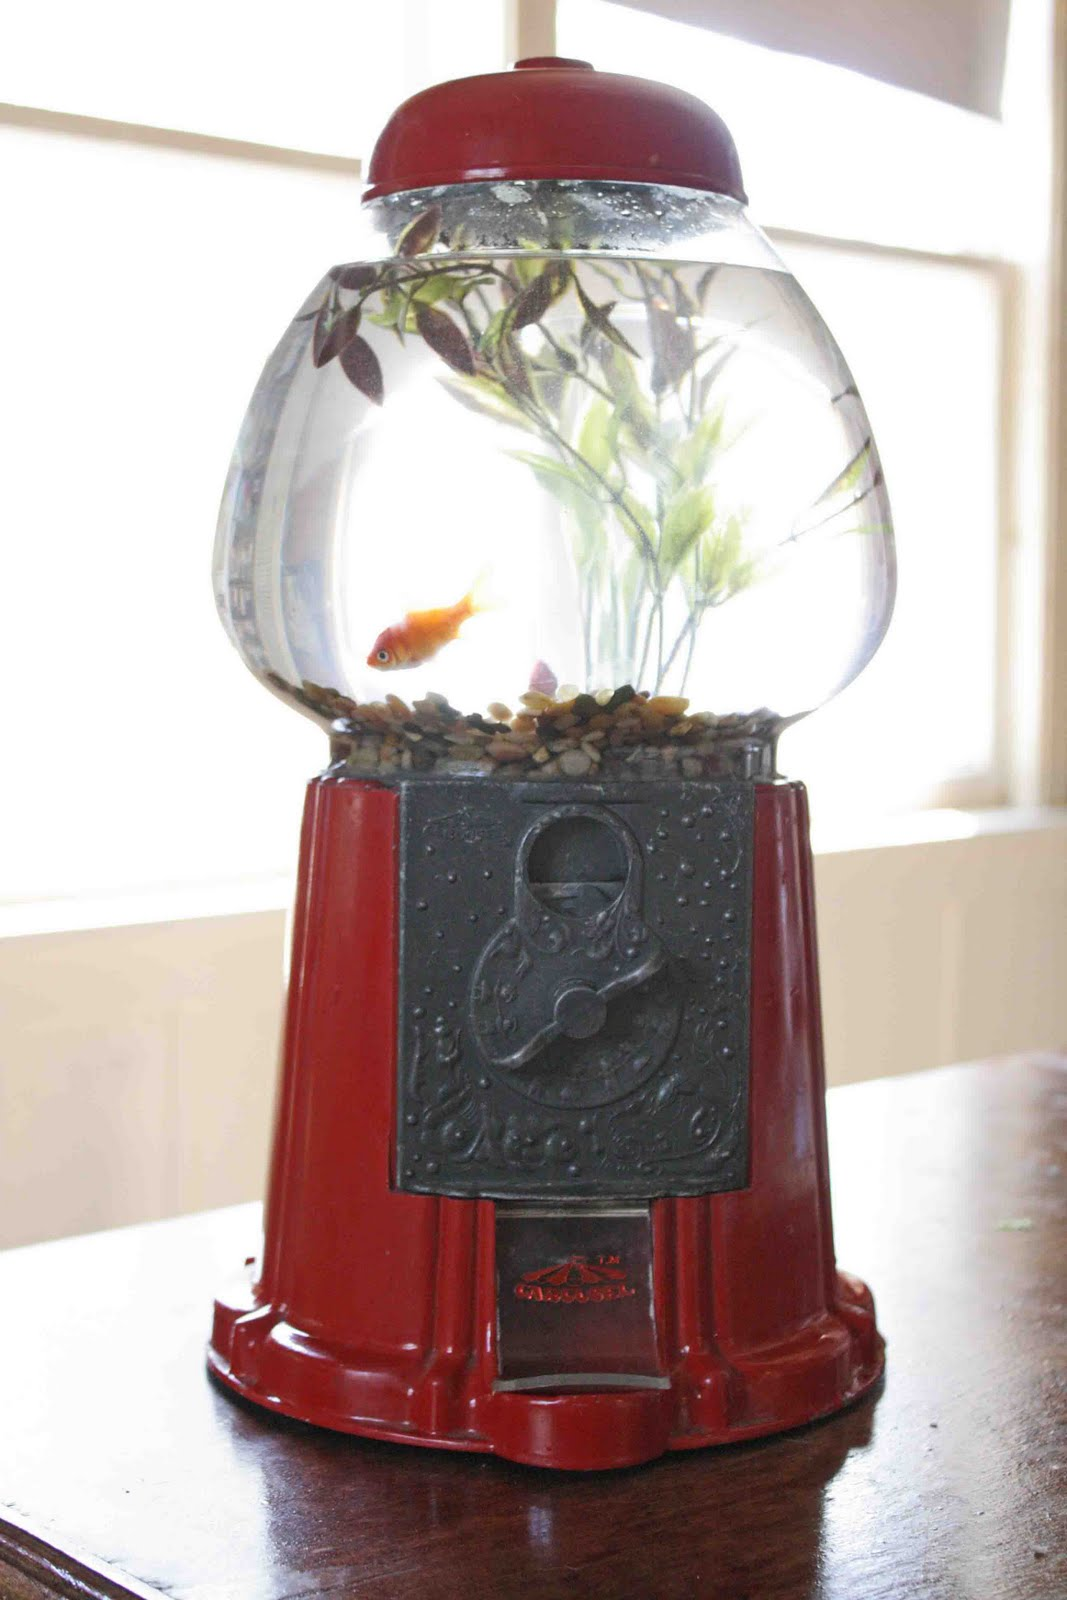 Gumball machine into a fish bowl she brittany or so for Gumball fish tank